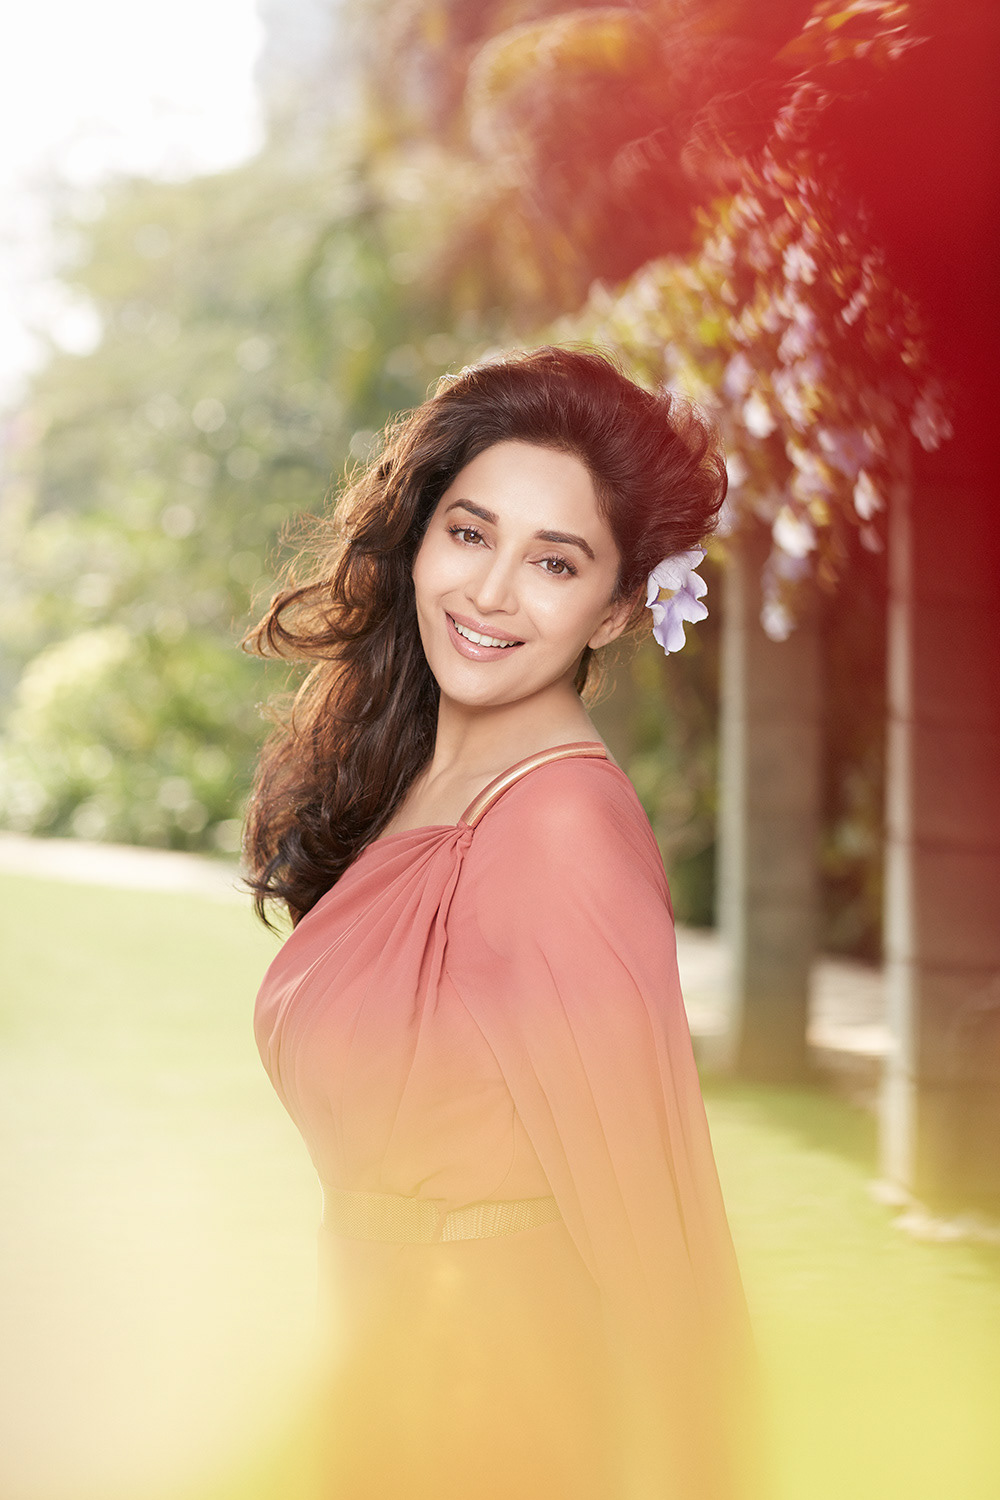 madhuri Madhuri dixit images: check out the best hd photos, latest pictures, recent photos of madhuri dixit only on filmibeat.